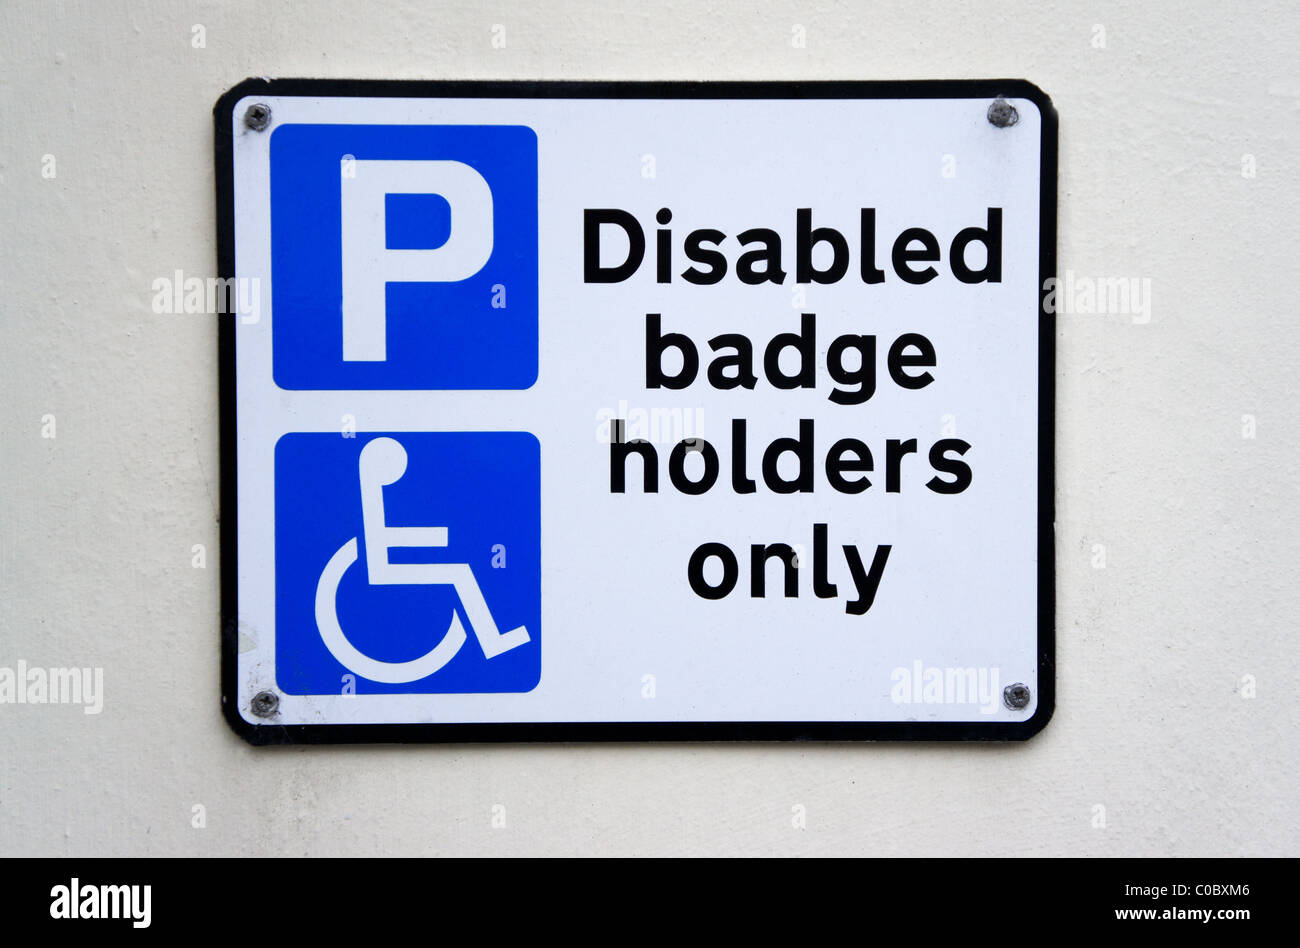 A disabled badge holders only, parking sign, uk - Stock Image